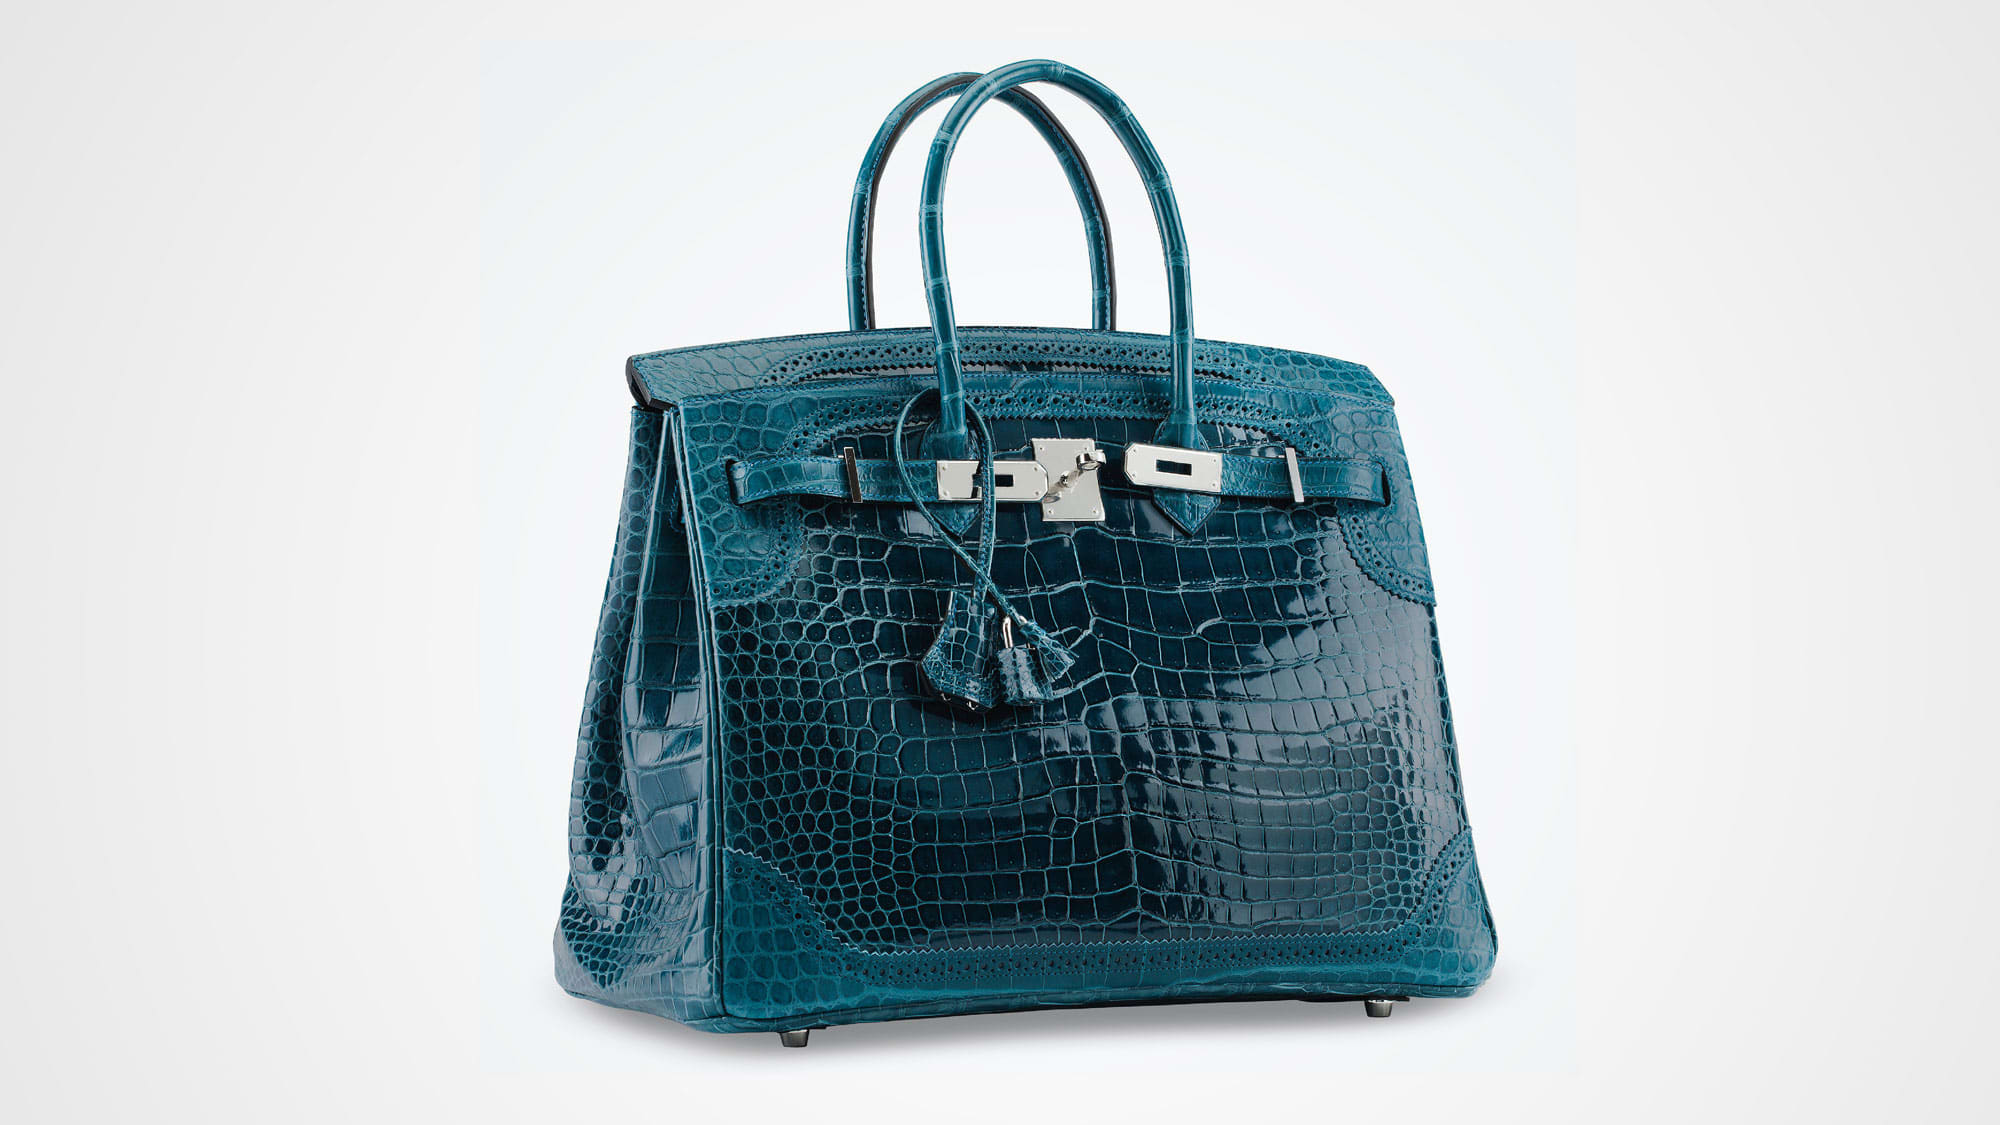 68cb62e962dc Hermès Birkin handbag expected to sell for over $50,000 at Christie's